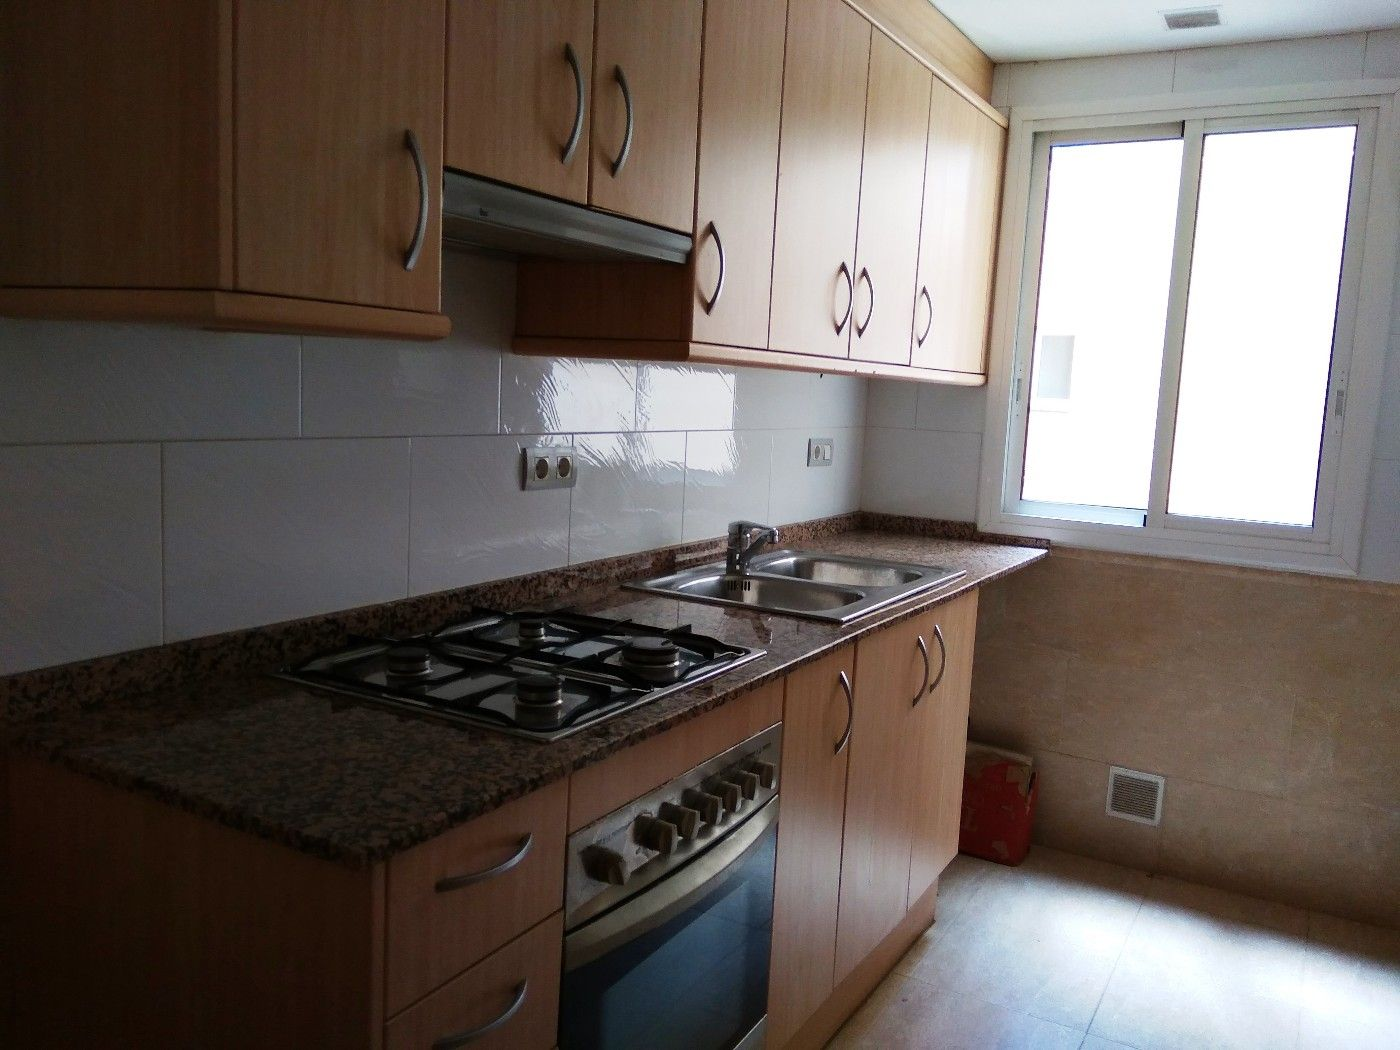 Location Appartement  Rambla generalitat. Pis totalmente exterior